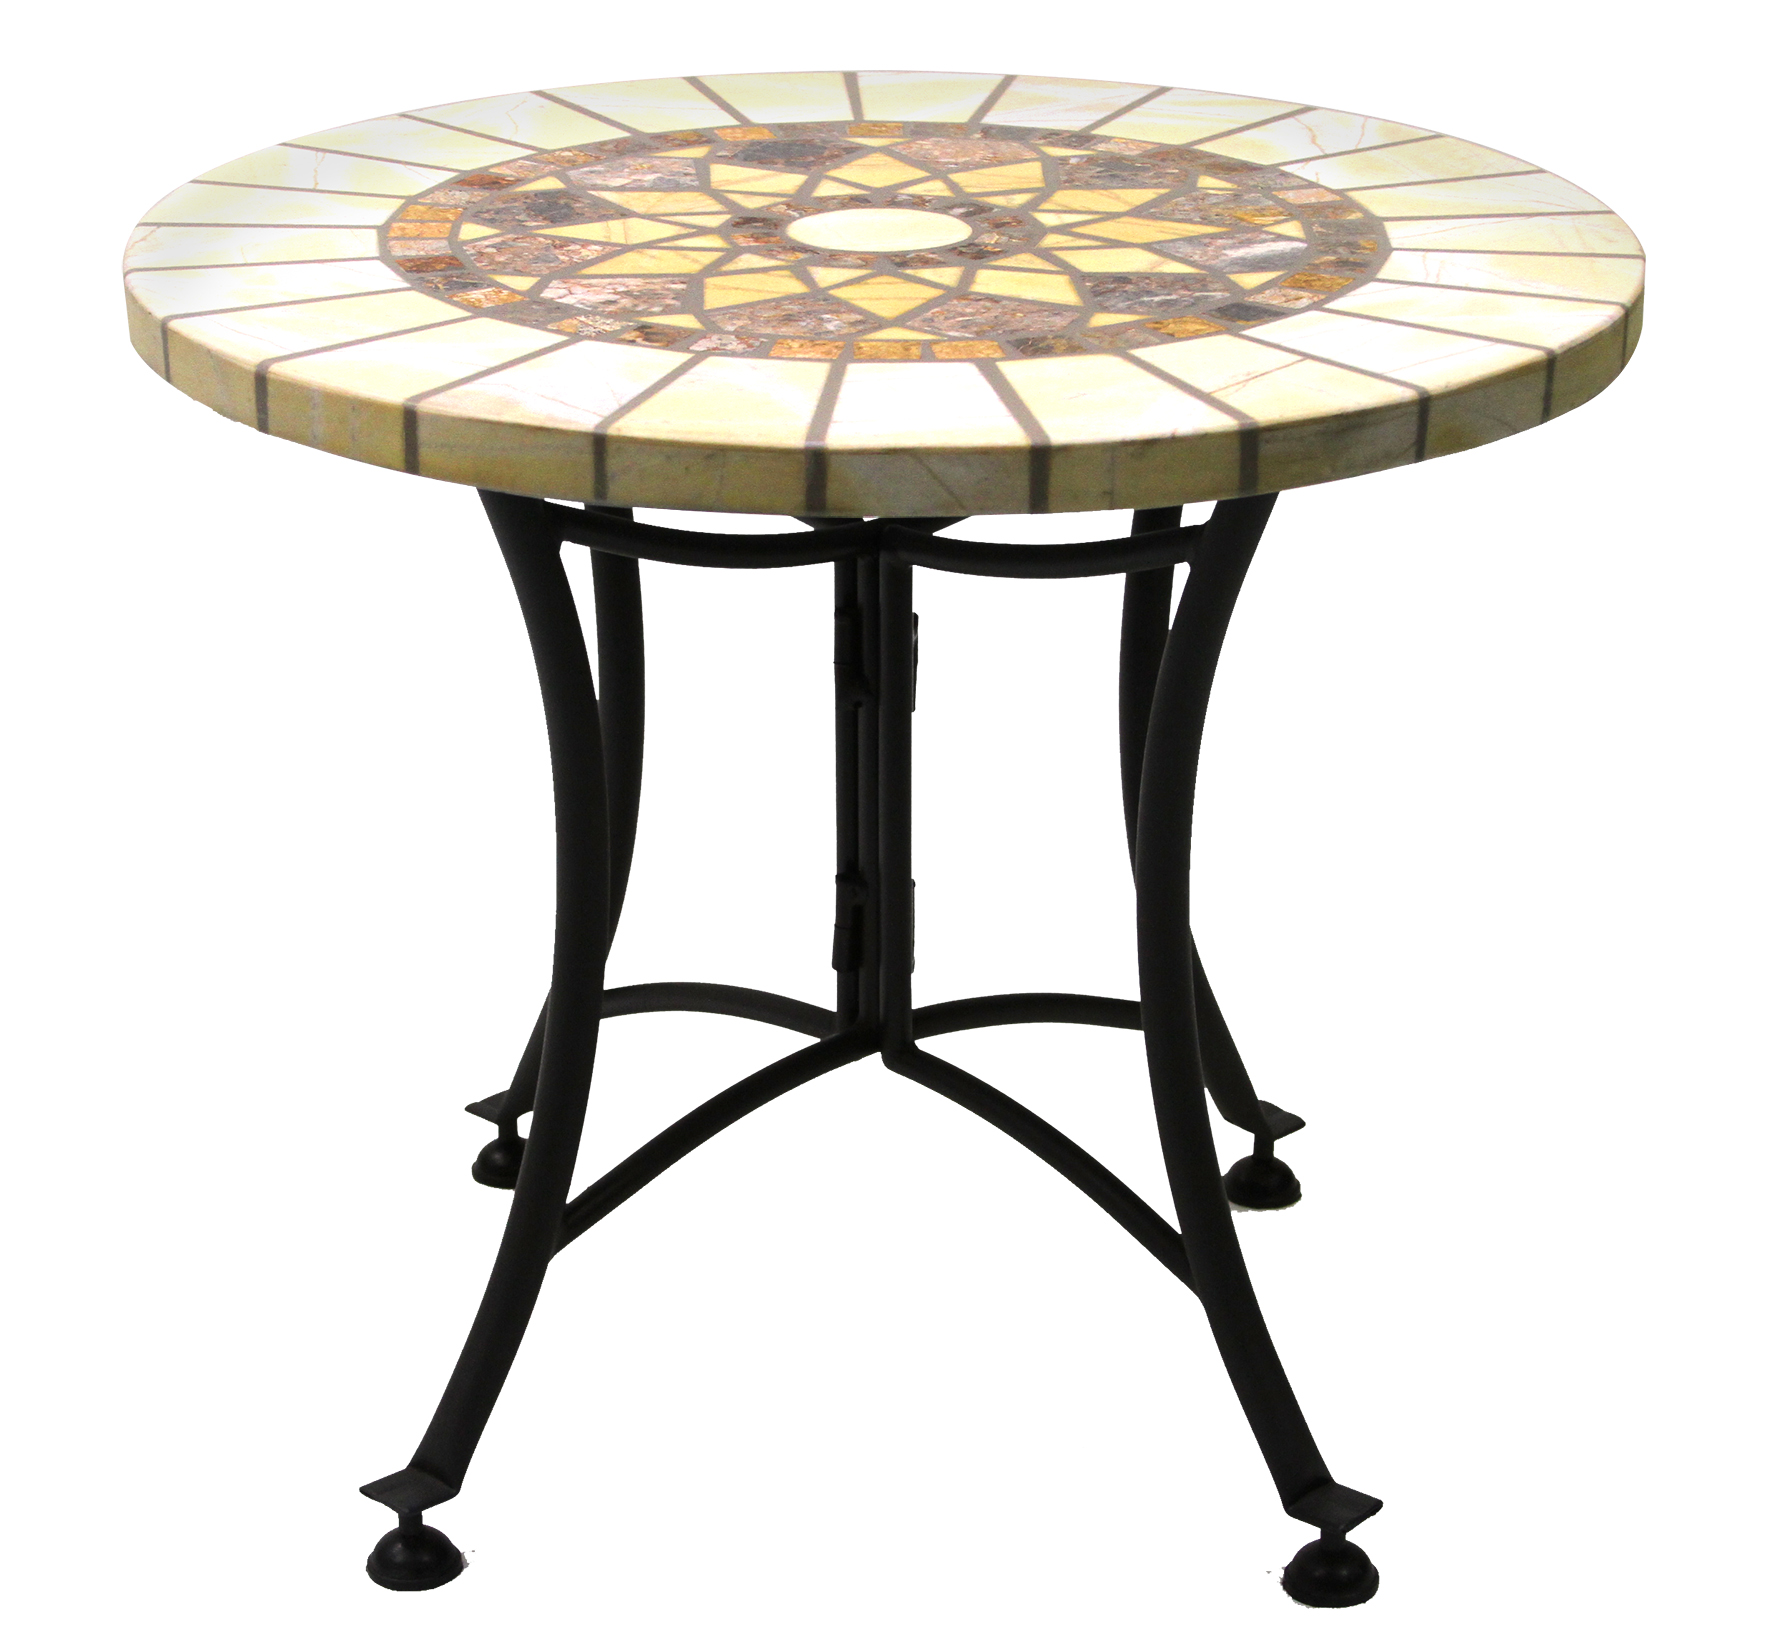 amazing outdoor accent table with side tables patio beautiful honeycomb marble mosaic end metal base home decor small umbrella hole acrylic cocktail reclaimed wood sofa kmart